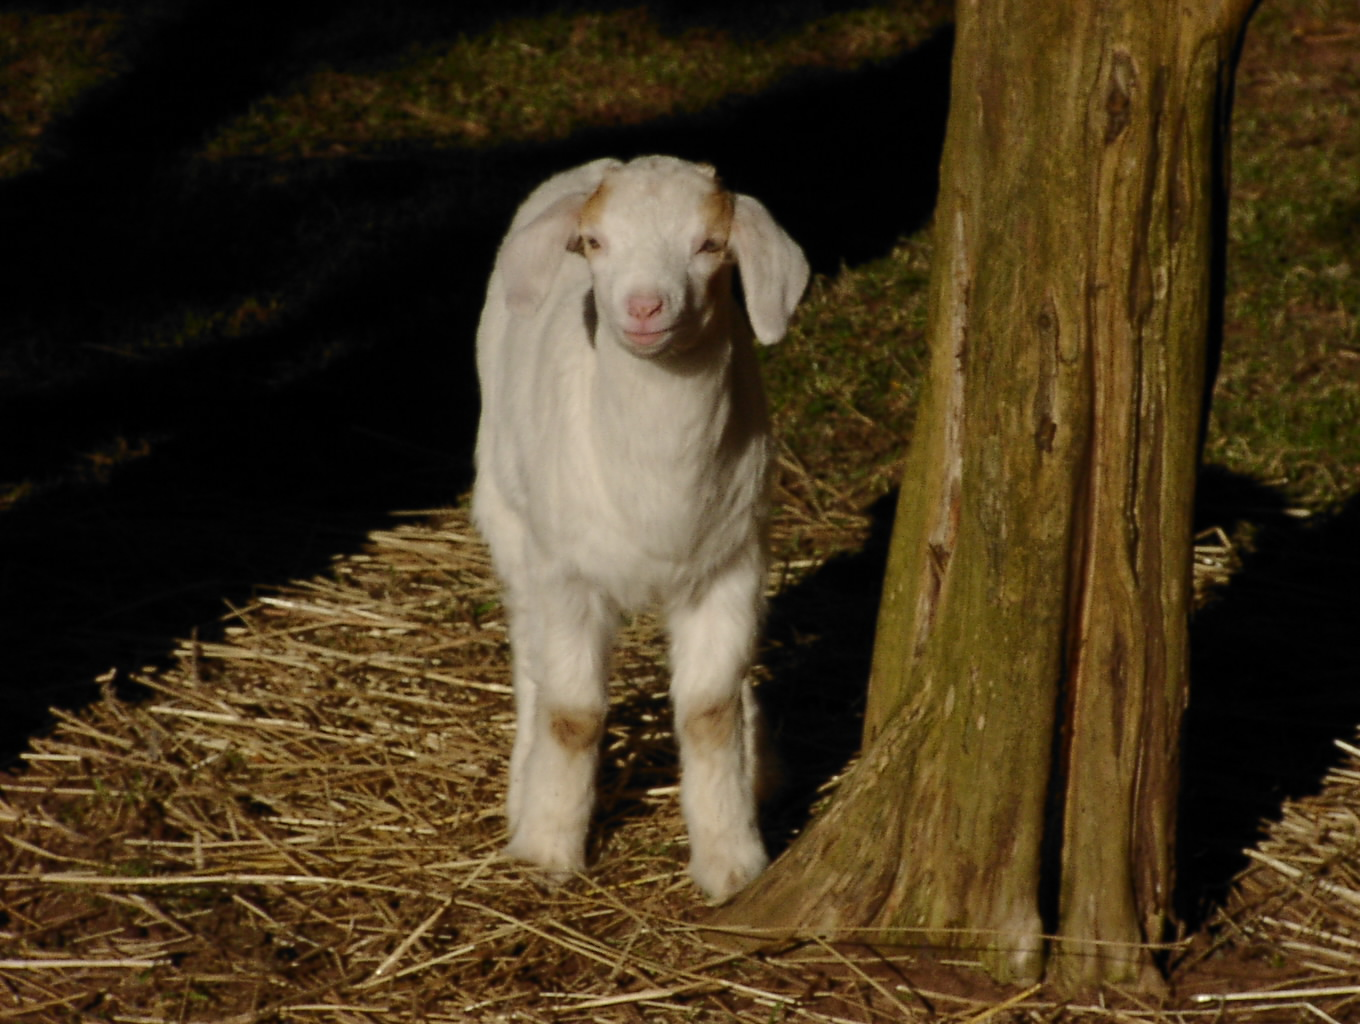 CountryTime Pony Rides - Mini Goat - Little Ricky